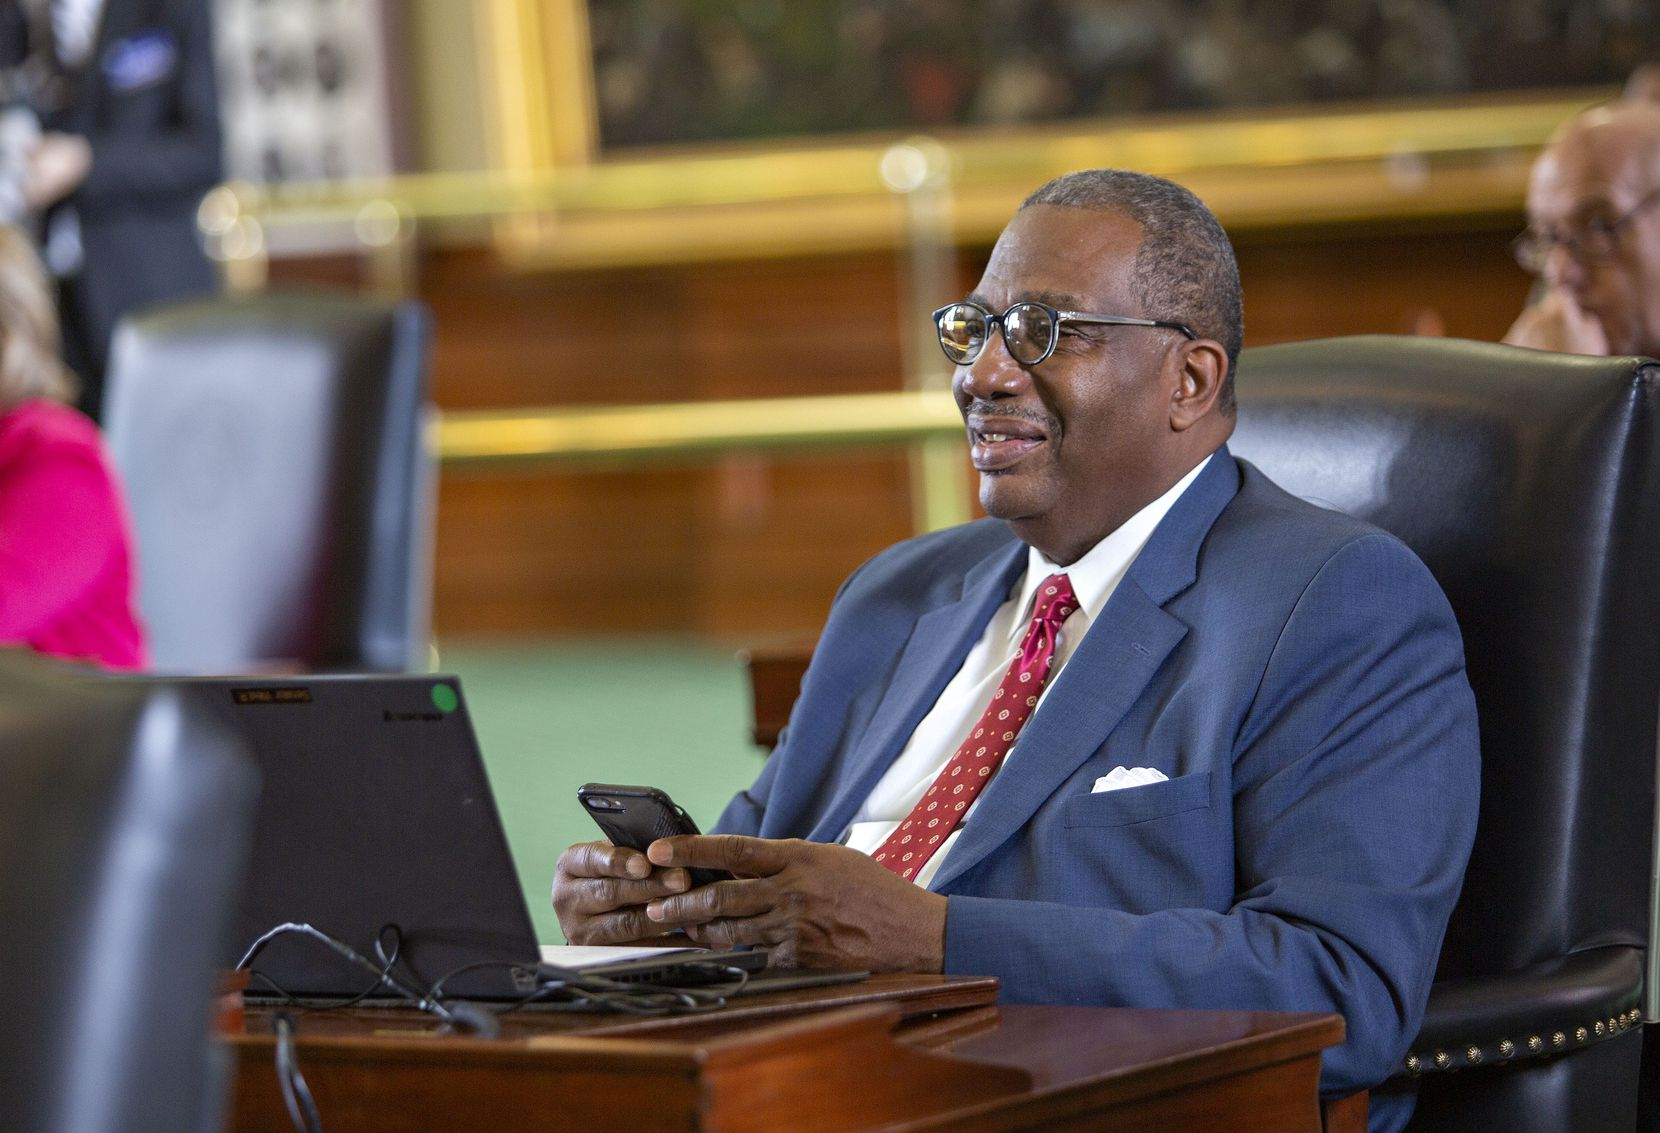 State Sen. Royce West as seen on the Senate floor just before Sine Die at the State Capitol of Texas on May 27, 2019 in Austin, Texas.